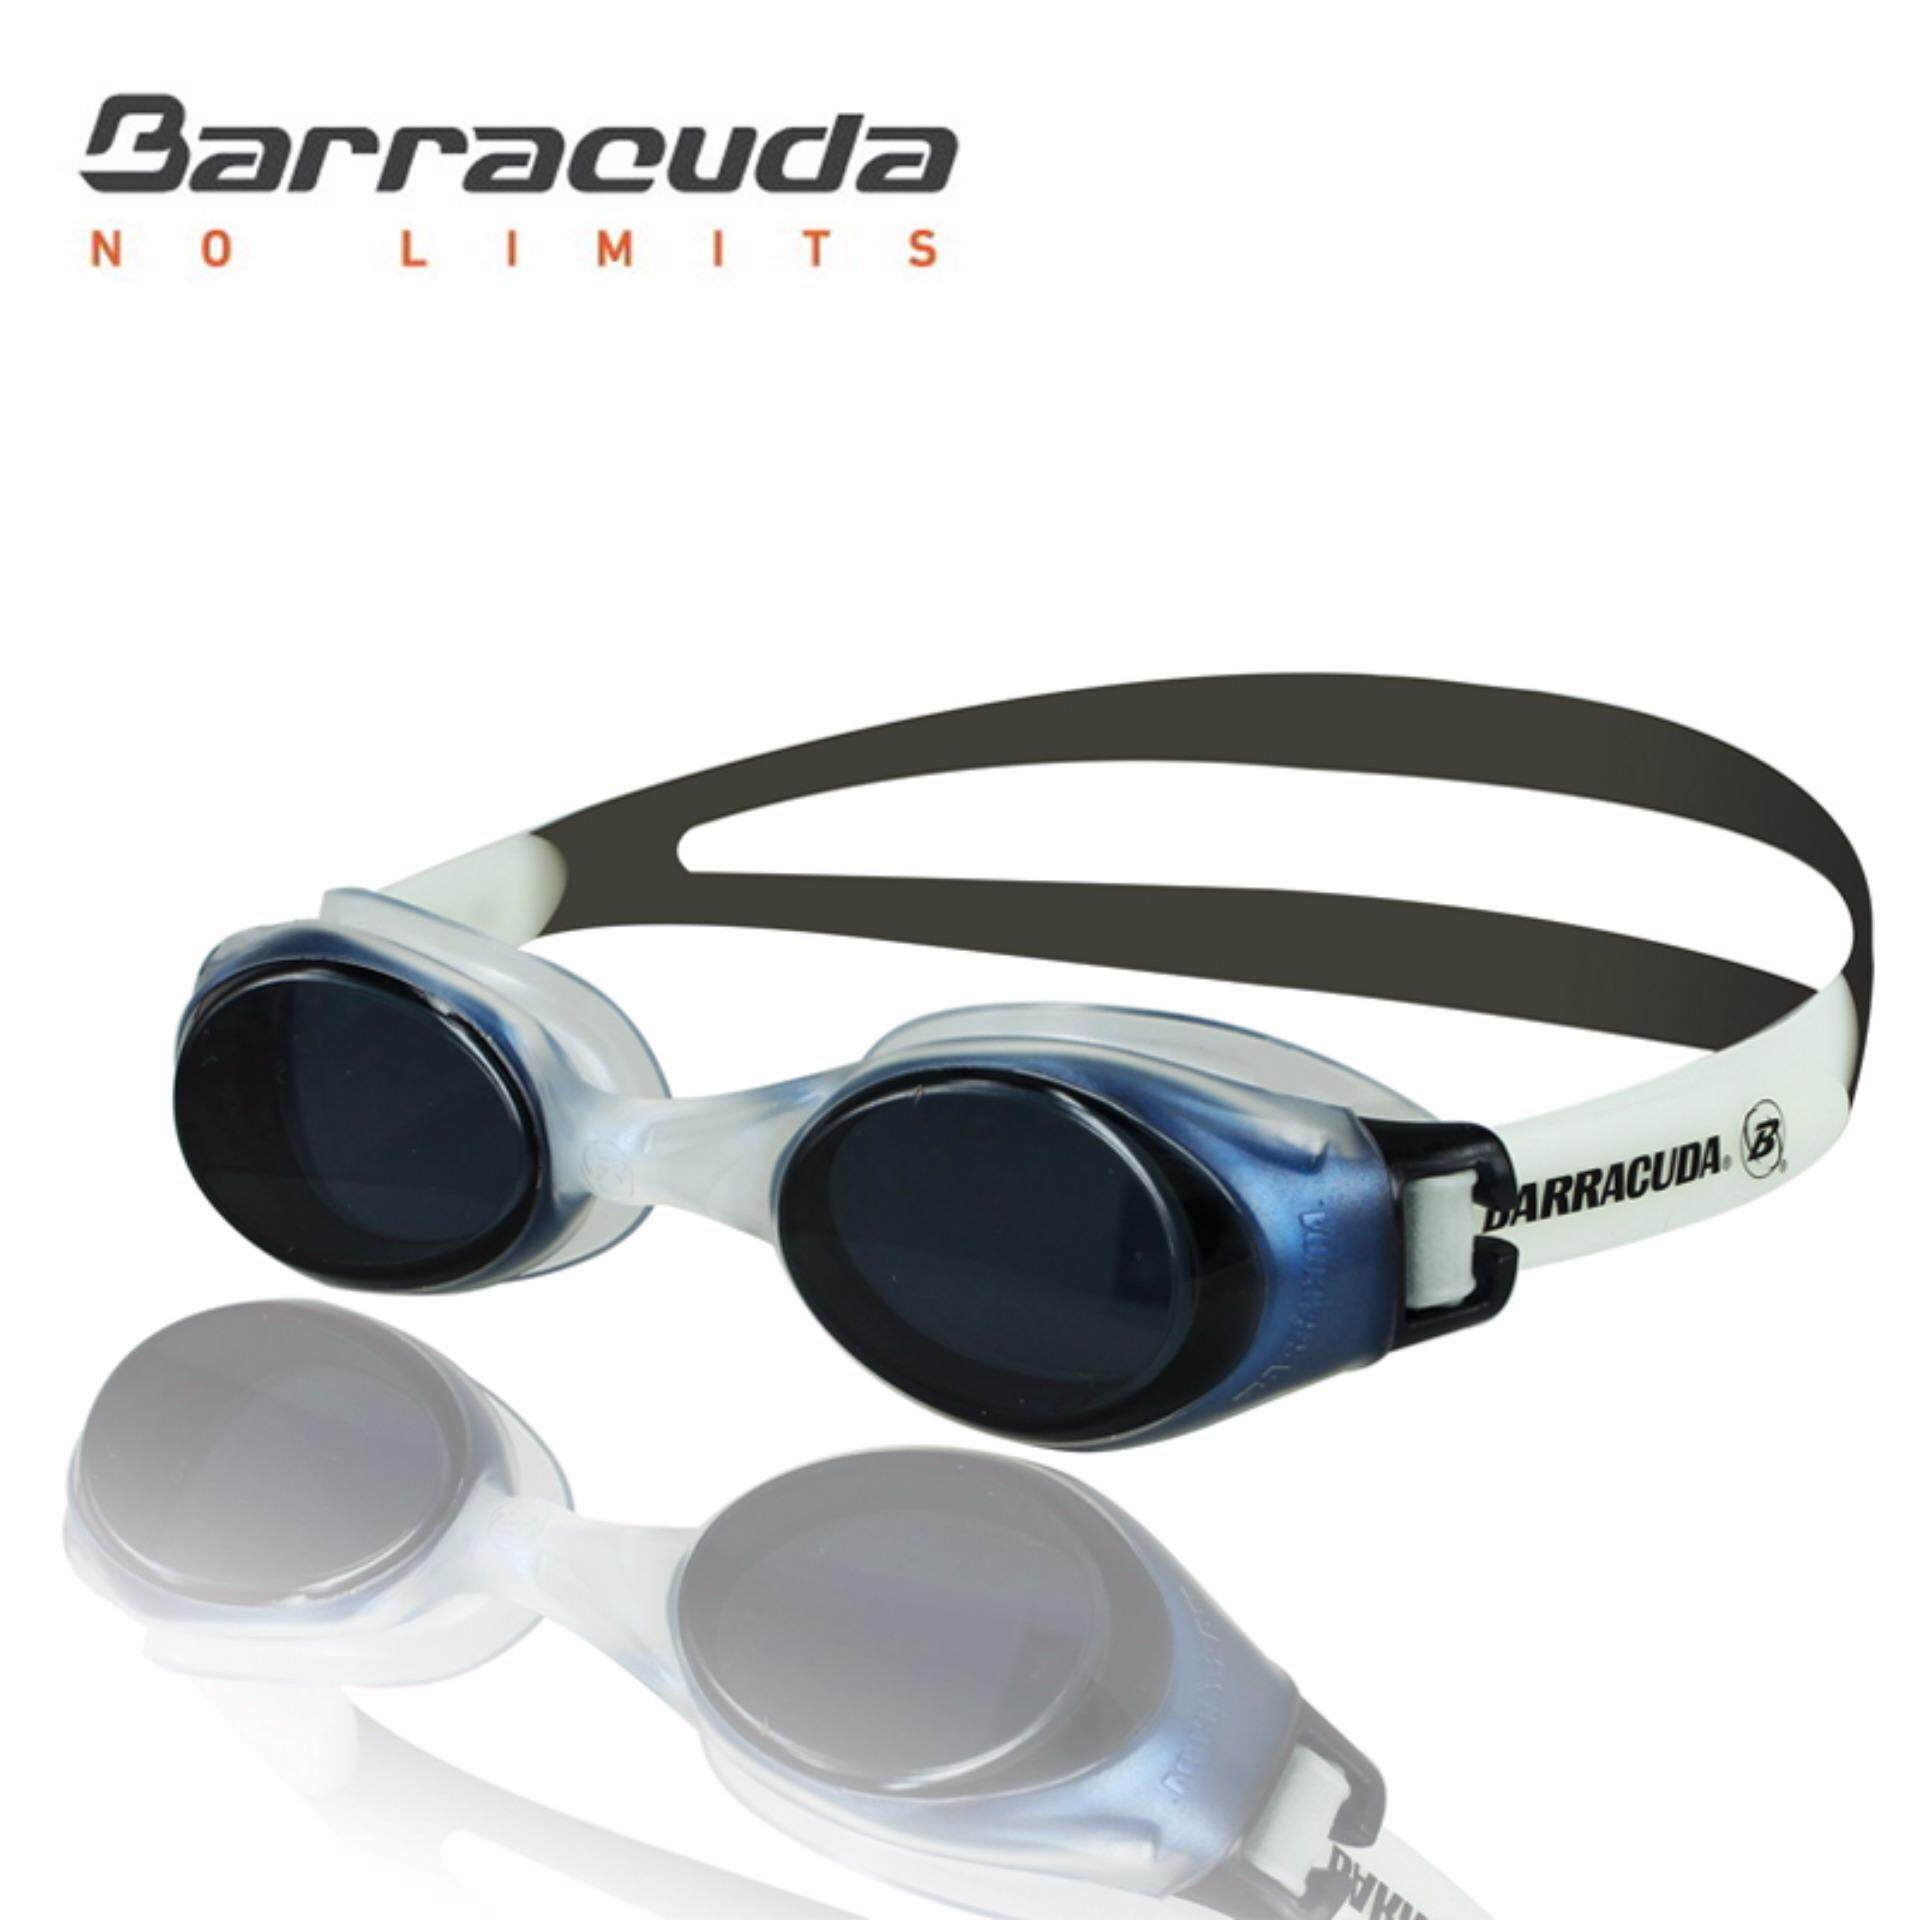 Barracuda Swimming Goggles - Slanted Lenses One-piece Frame, Anti-Fog UV Protection, Shatter-resistance, Easy Adjusting Lightweight Comfortable for Adults Men Women #13355